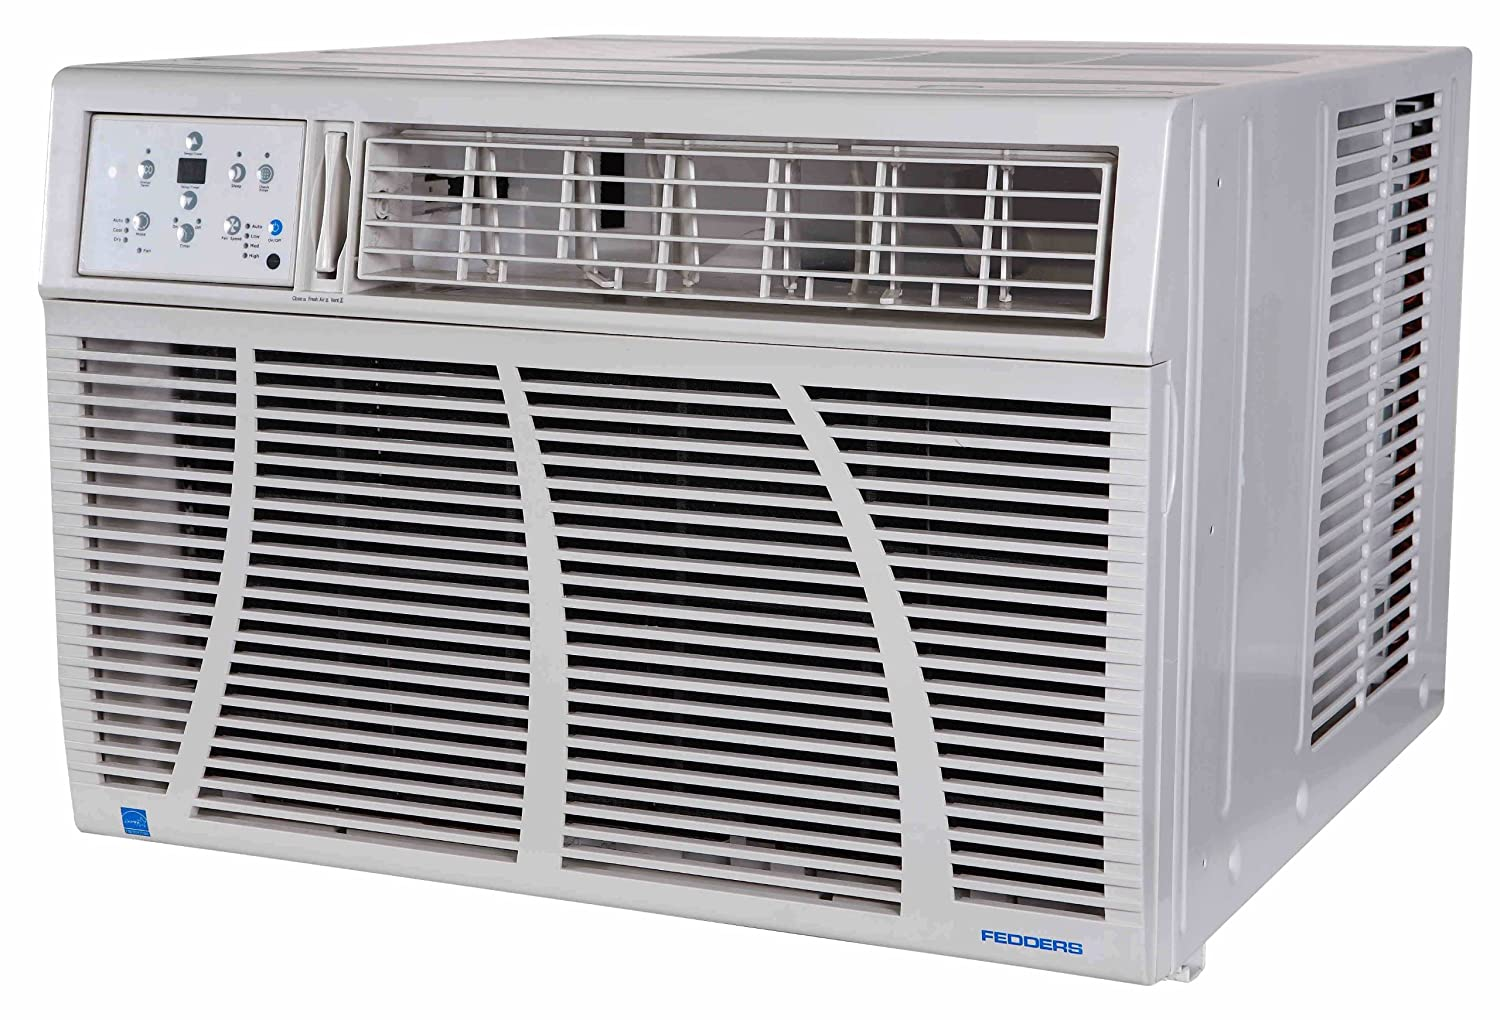 Fedders Parts List Fedder Gas Furnace Wiring Az A Window Air Conditioner Energy Star Btus Cooling Square Feet Area E Pints